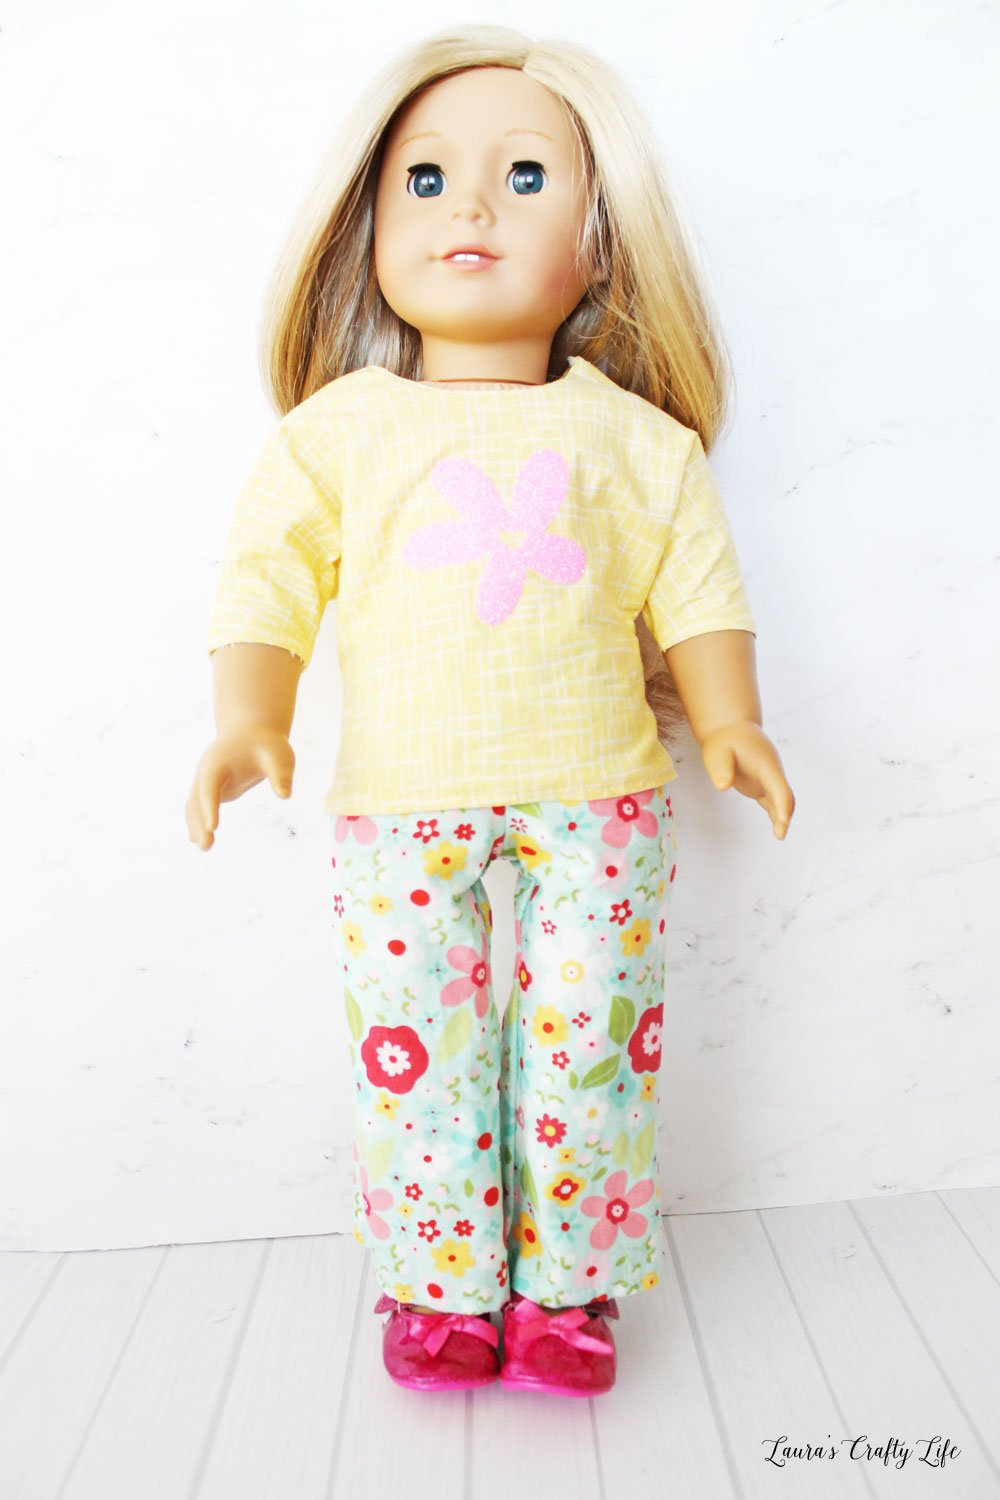 Make an outfit for an American Girl doll using the Cricut Maker